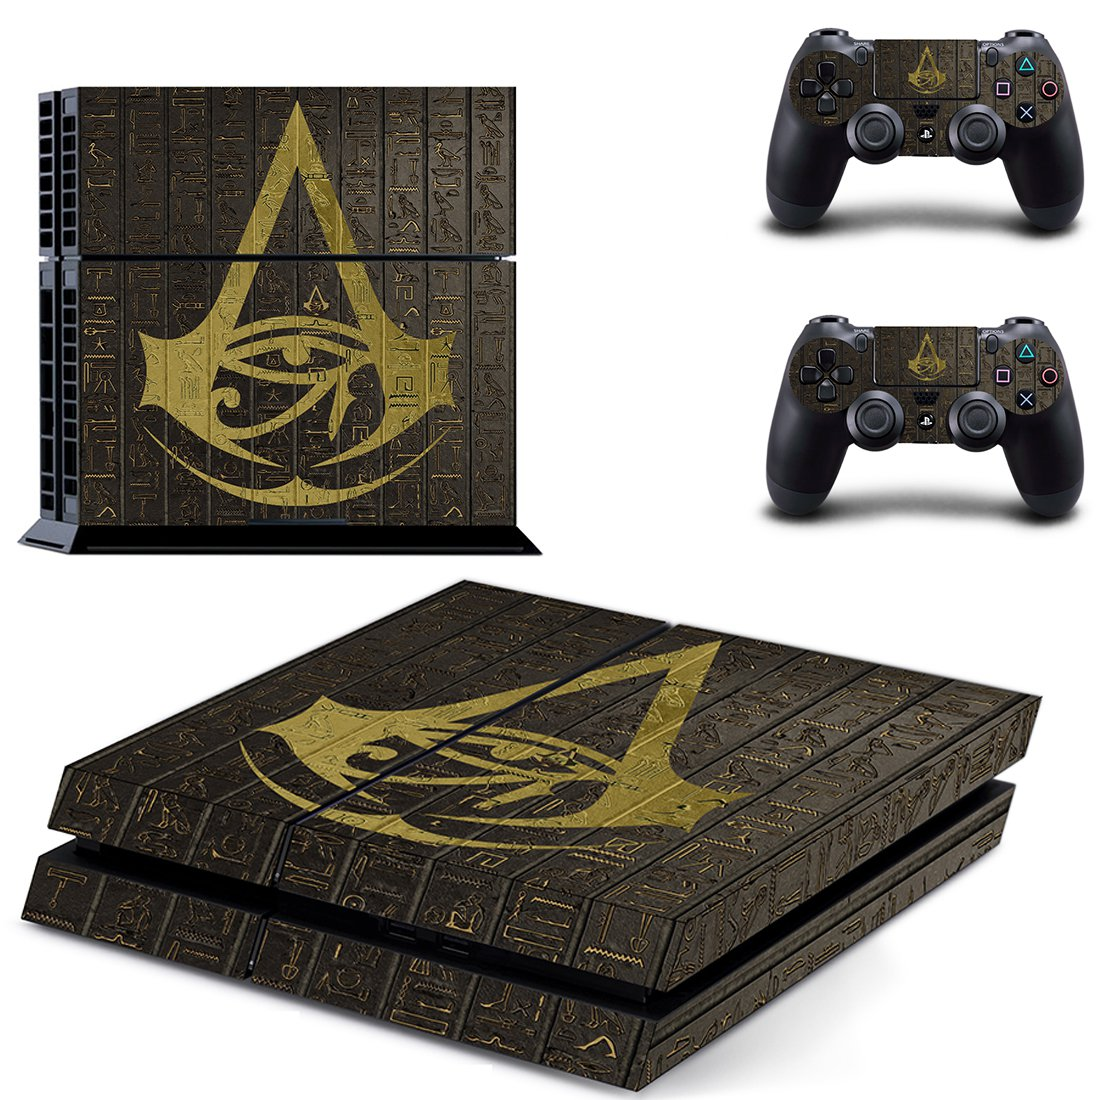 Assassins Creed PS4 Skin Sticker Decals PS4 Console And Controllers Protect Your PS4